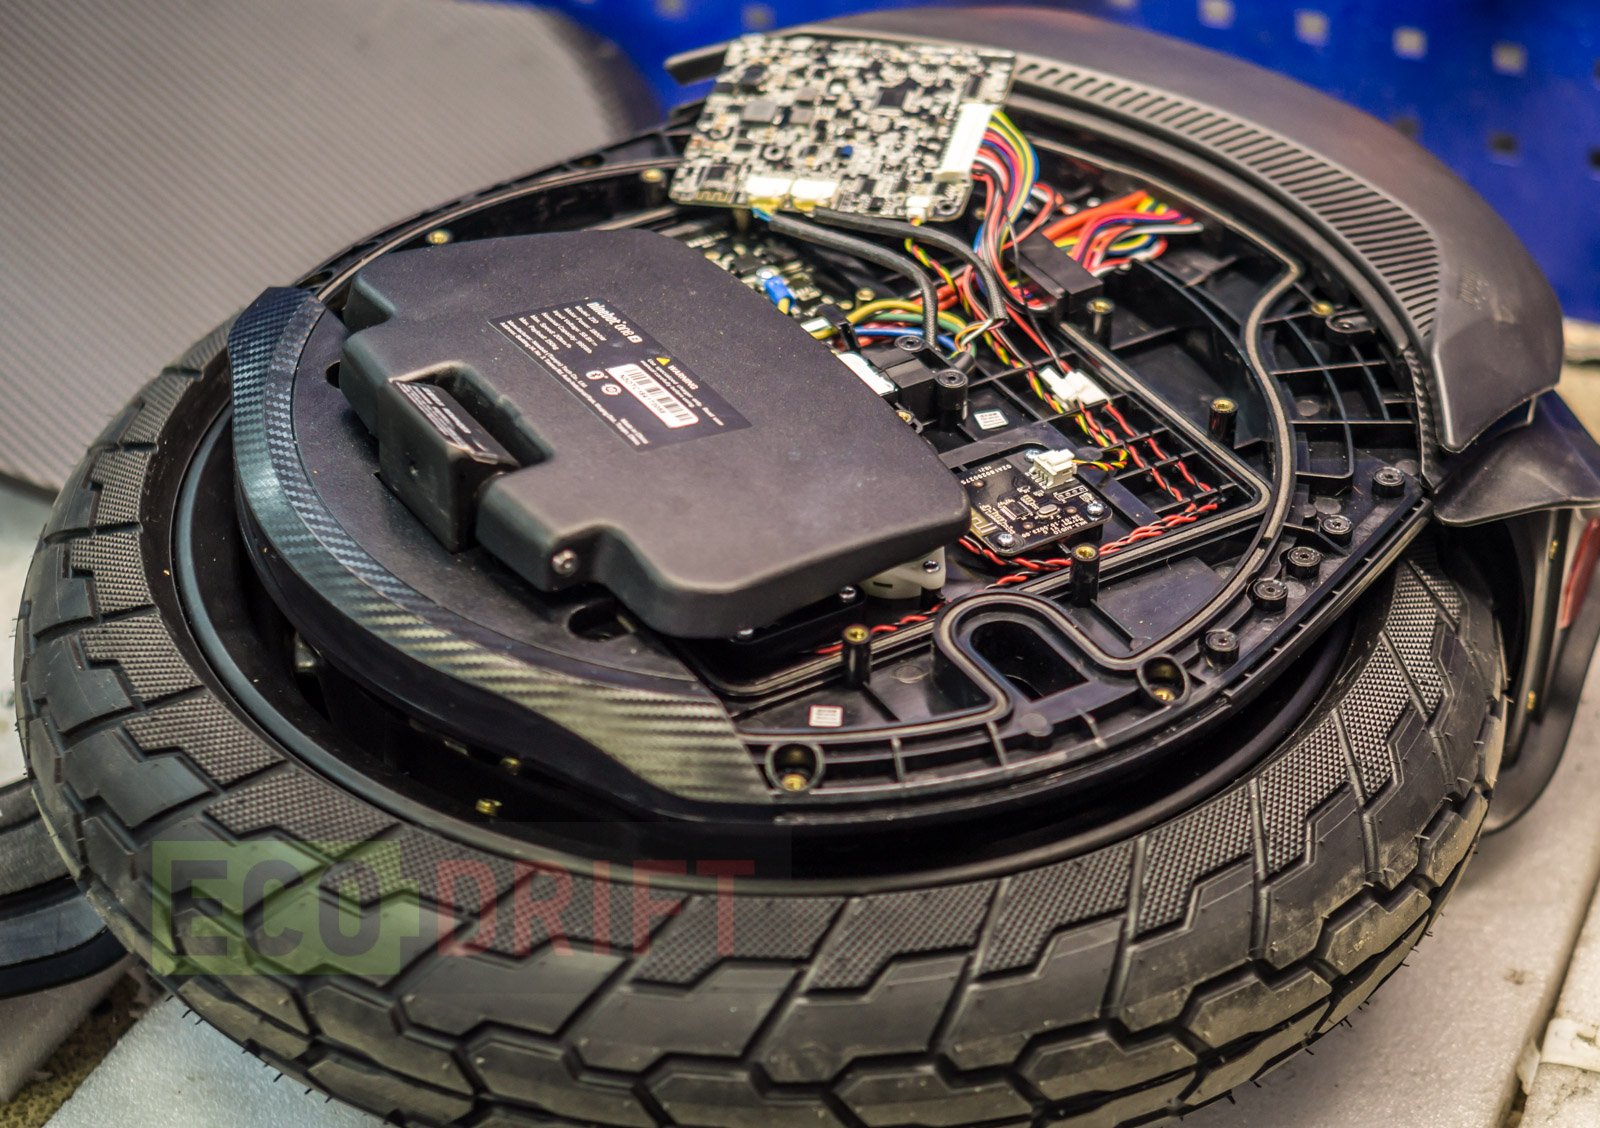 EcoDrift ru] Ninebot Z10: A Diagnosis of Common Issues